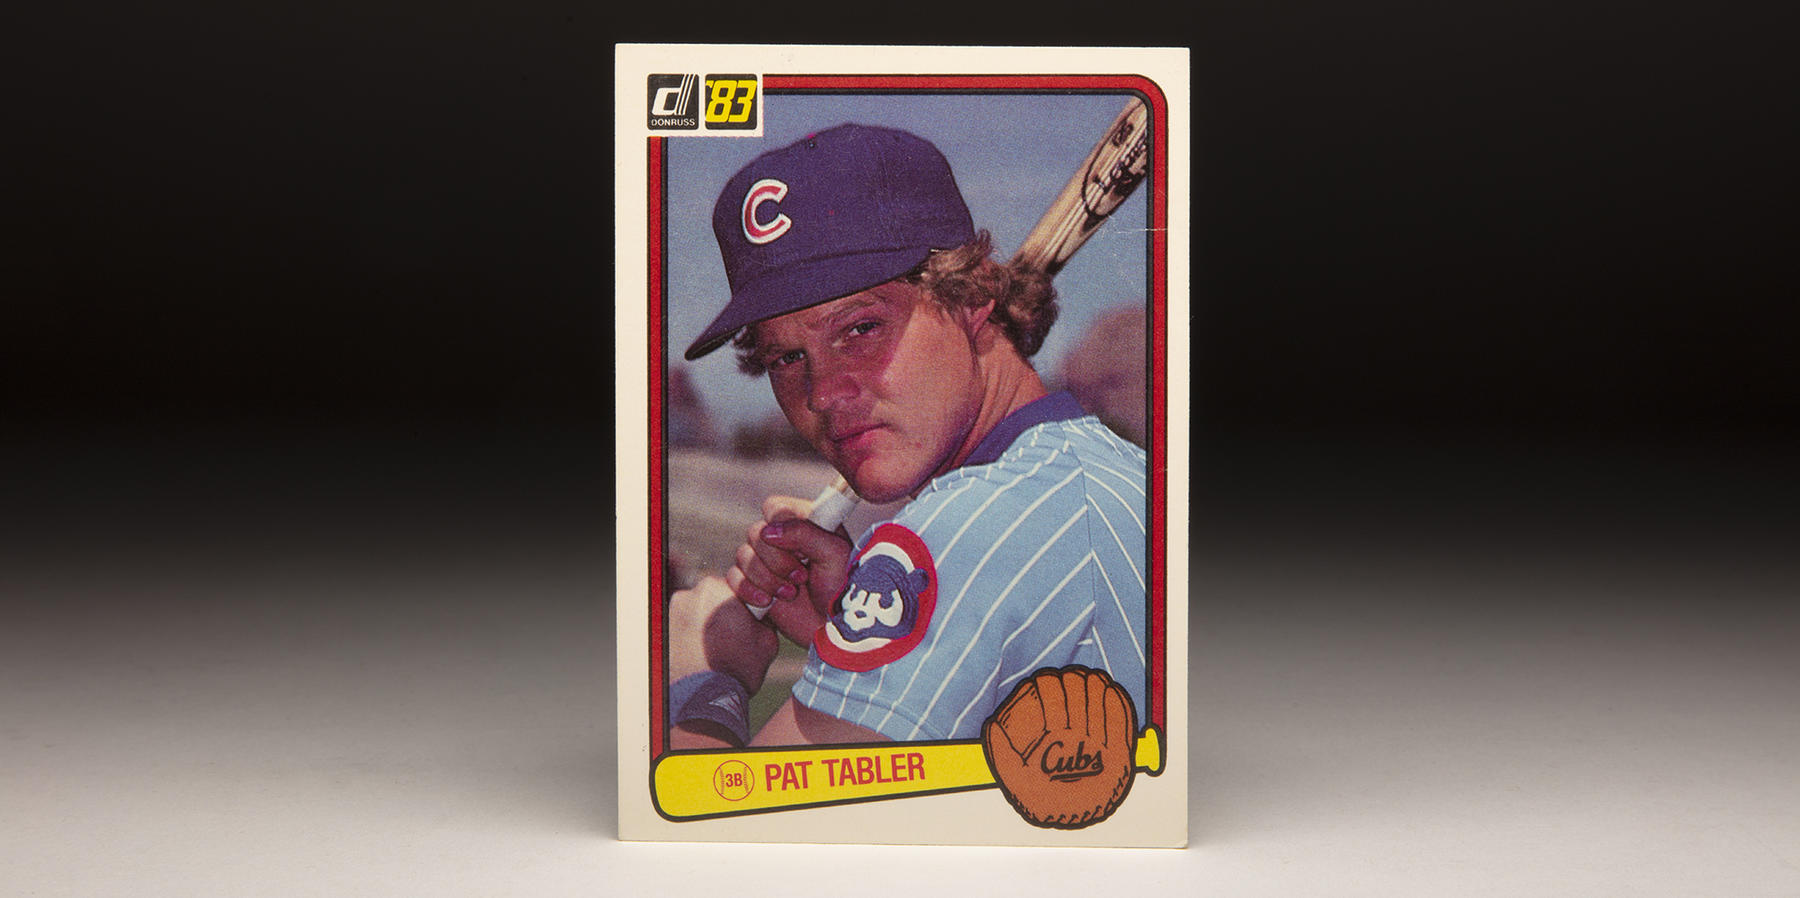 Pat Tabler's 1983 Donruss card featured the distinctive blue uniforms of the Cubs of that era. (Milo Stewart Jr./National Baseball Hall of Fame and Museum)